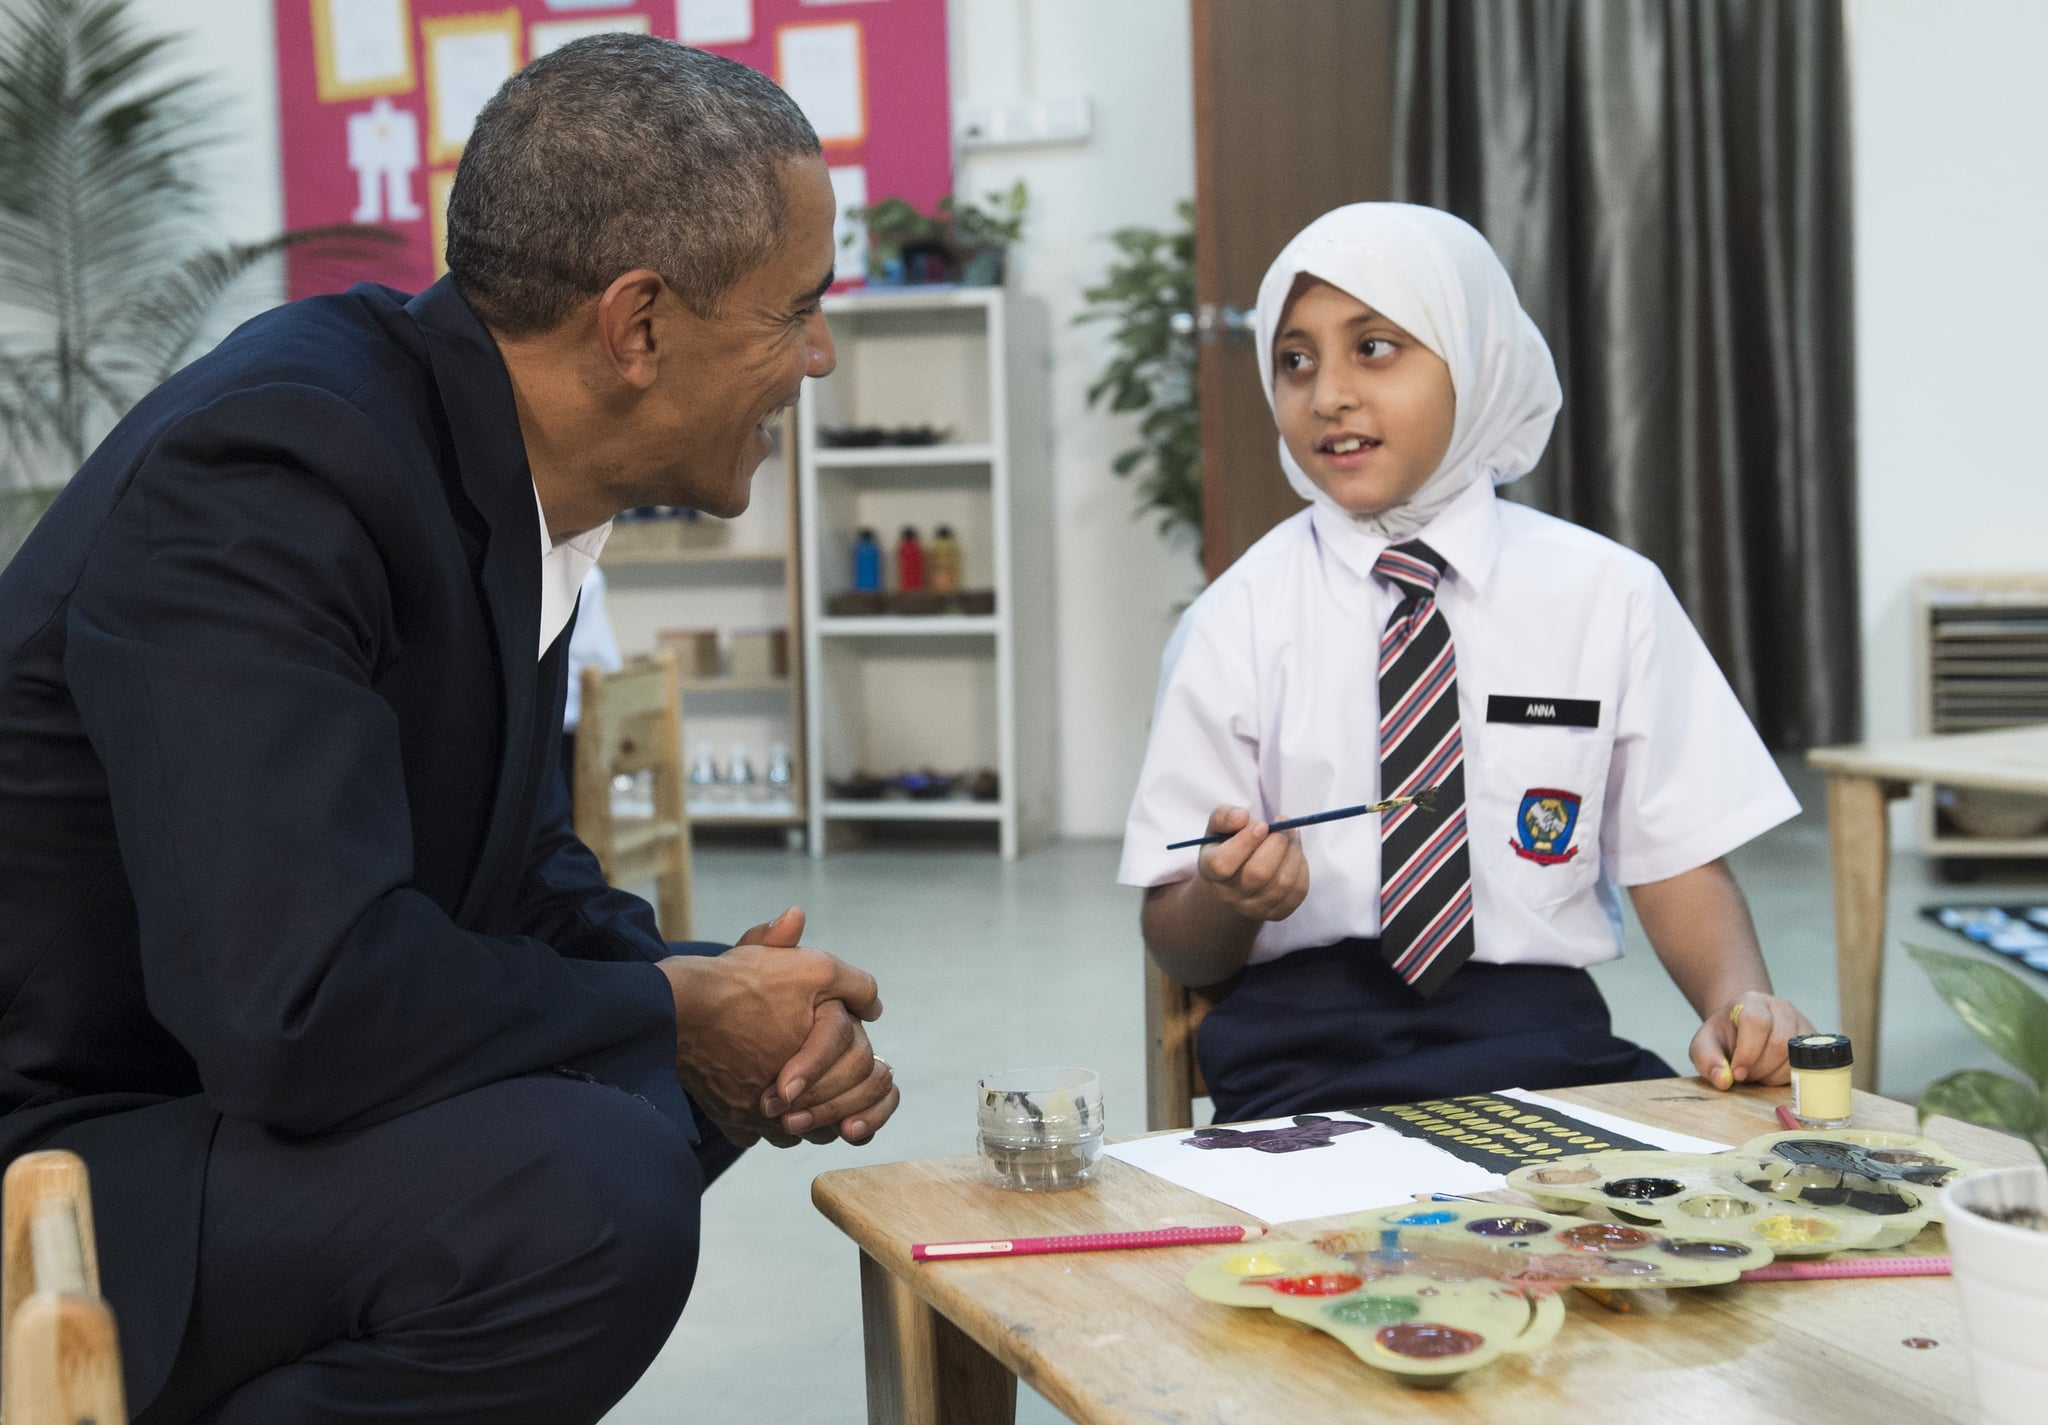 US President Barack Obama (L) speaks with children between the ages of seven and nine as he tours the Dignity for Children Foundation in Kuala Lumpur on November 21, 2015 on the sidelines of his participation in the Association of Southeast Asian Nations (ASEAN) Summit. The Foundation serves more than 1,000 poor and vulnerable children, many of them refugees, in a specialized learning environment to help develop children academically and socially to empower them to become productive members of society.  Obama and his counterparts from China, India, Japan and elsewhere are meeting in Kuala Lumpur for two days of talks hosted by the 10-country ASEAN.   AFP PHOTO / SAUL LOEB        (Photo credit should read SAUL LOEB/AFP/Getty Images)